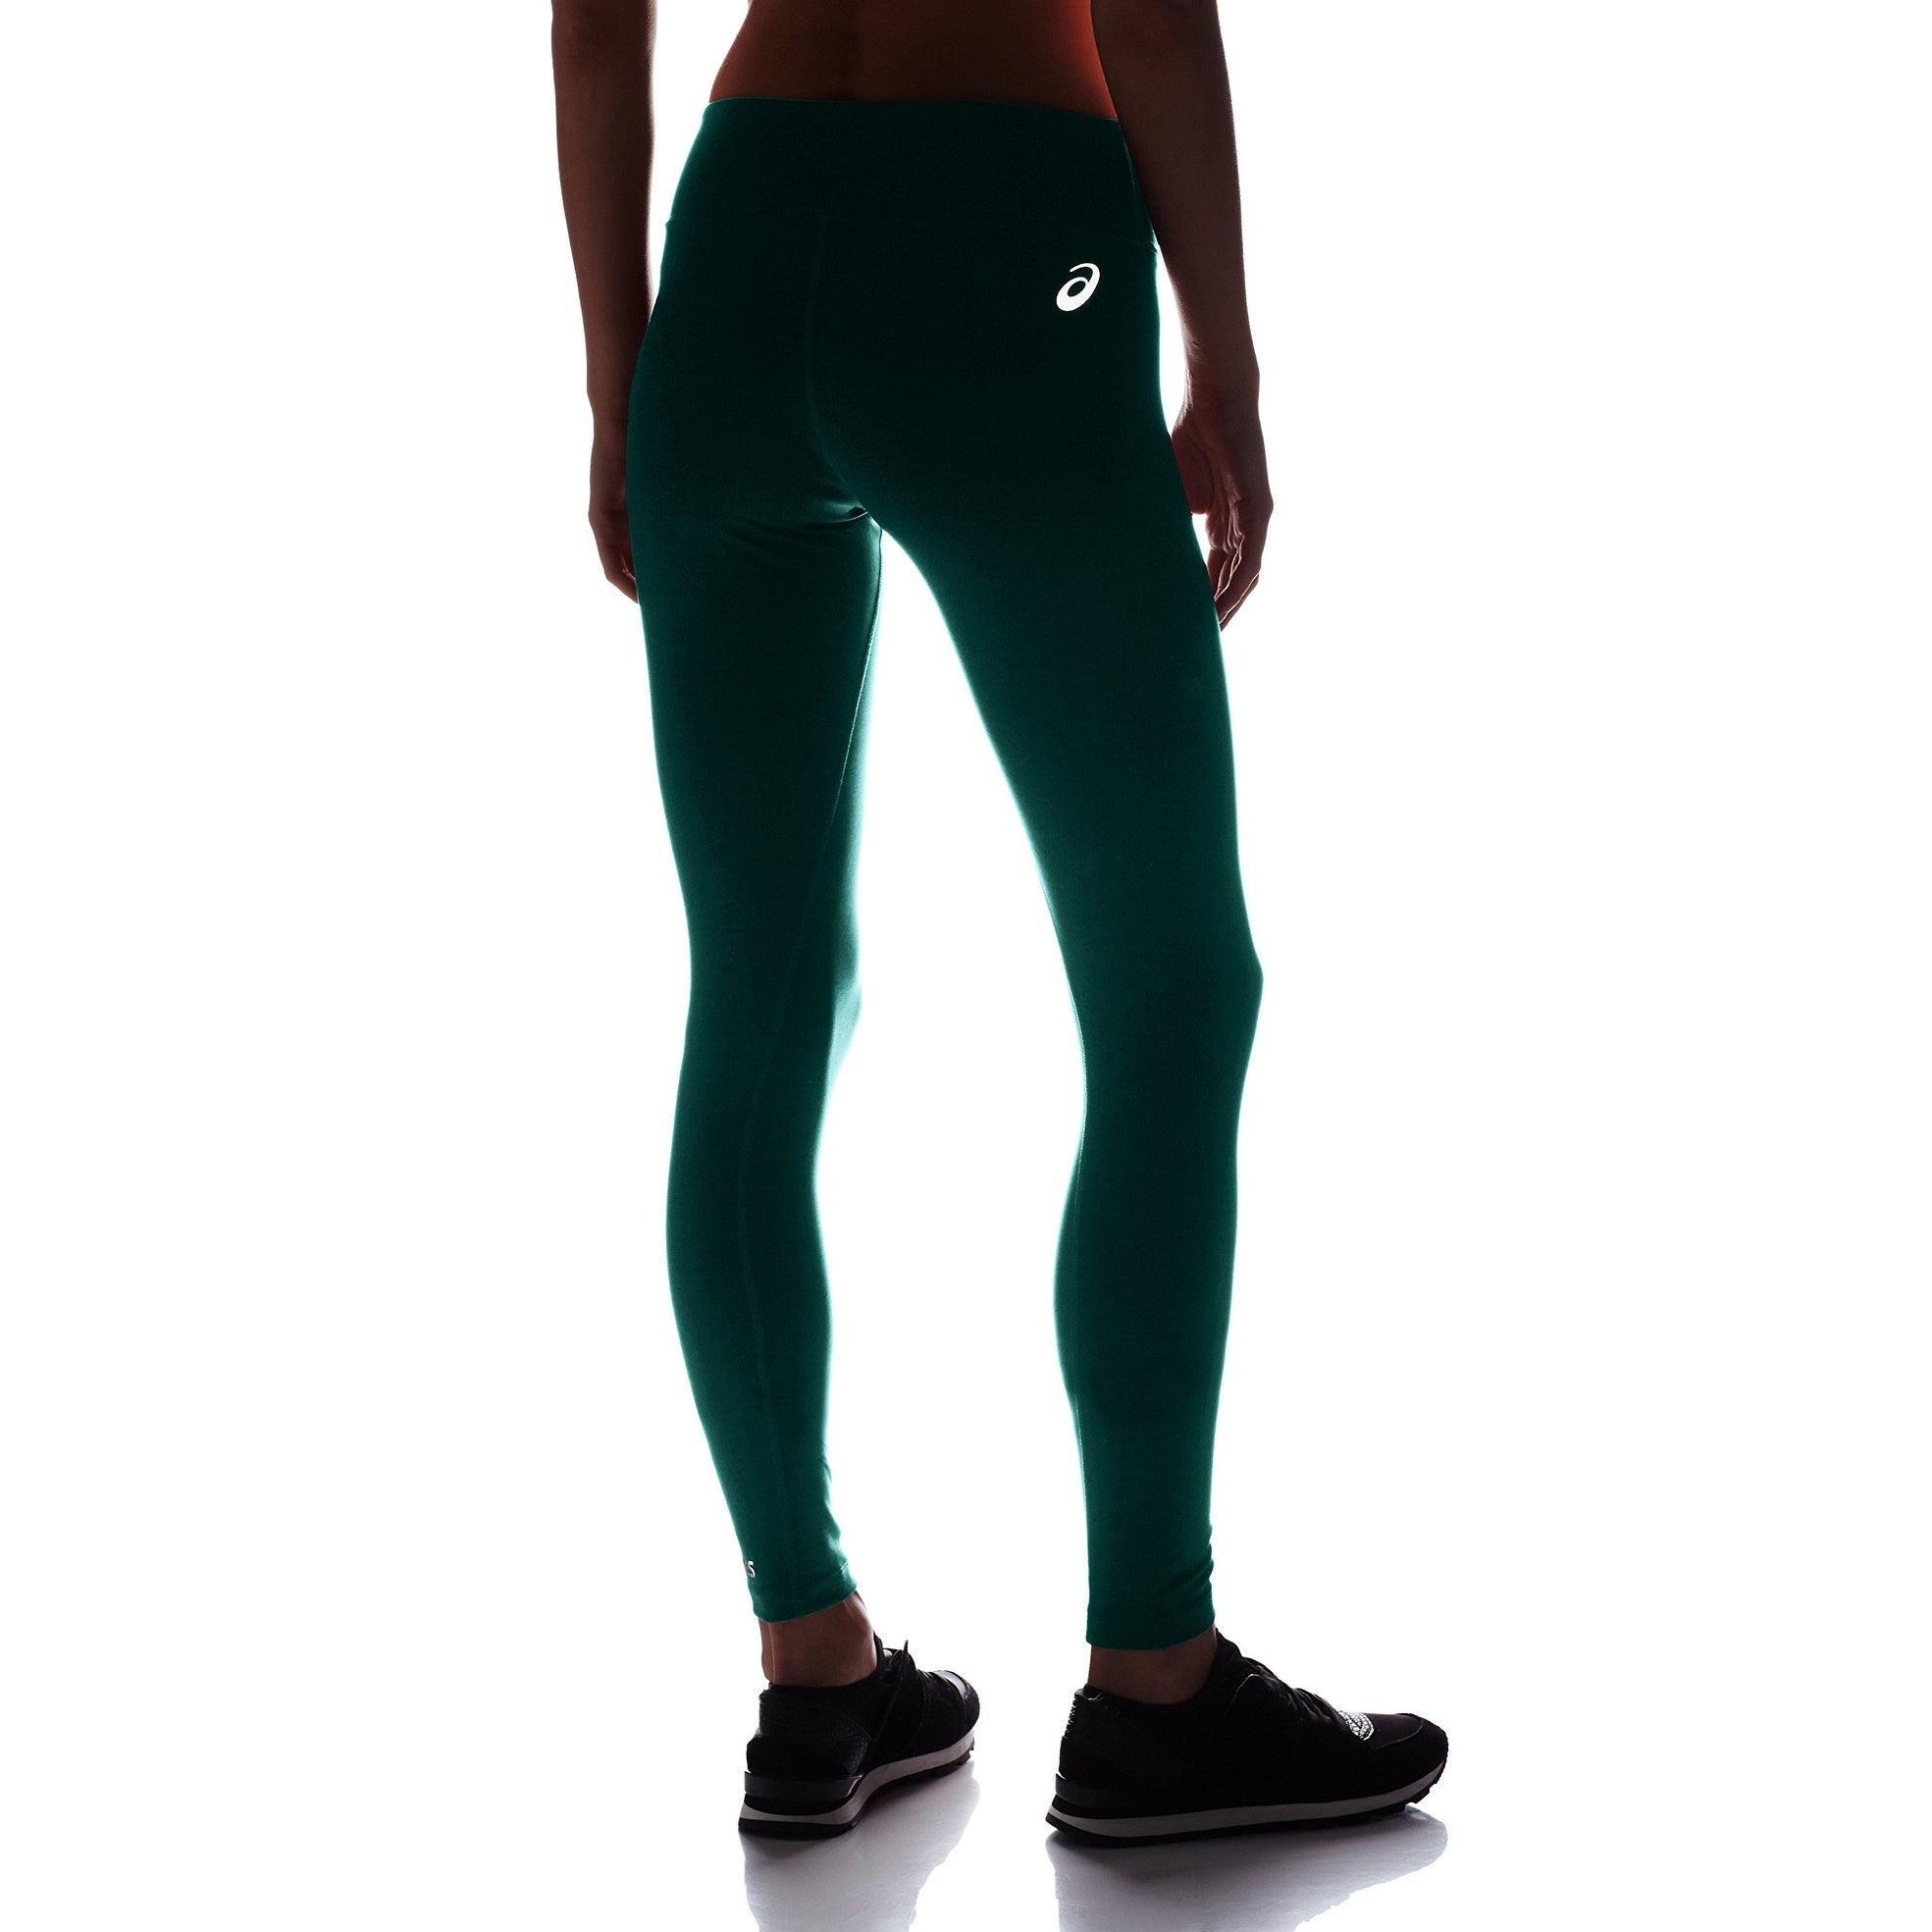 ac9943a5c481 Shop Asics Solid Women s Performance Tight Active Leggings Pants - Free  Shipping On Orders Over  45 - Overstock - 26895015